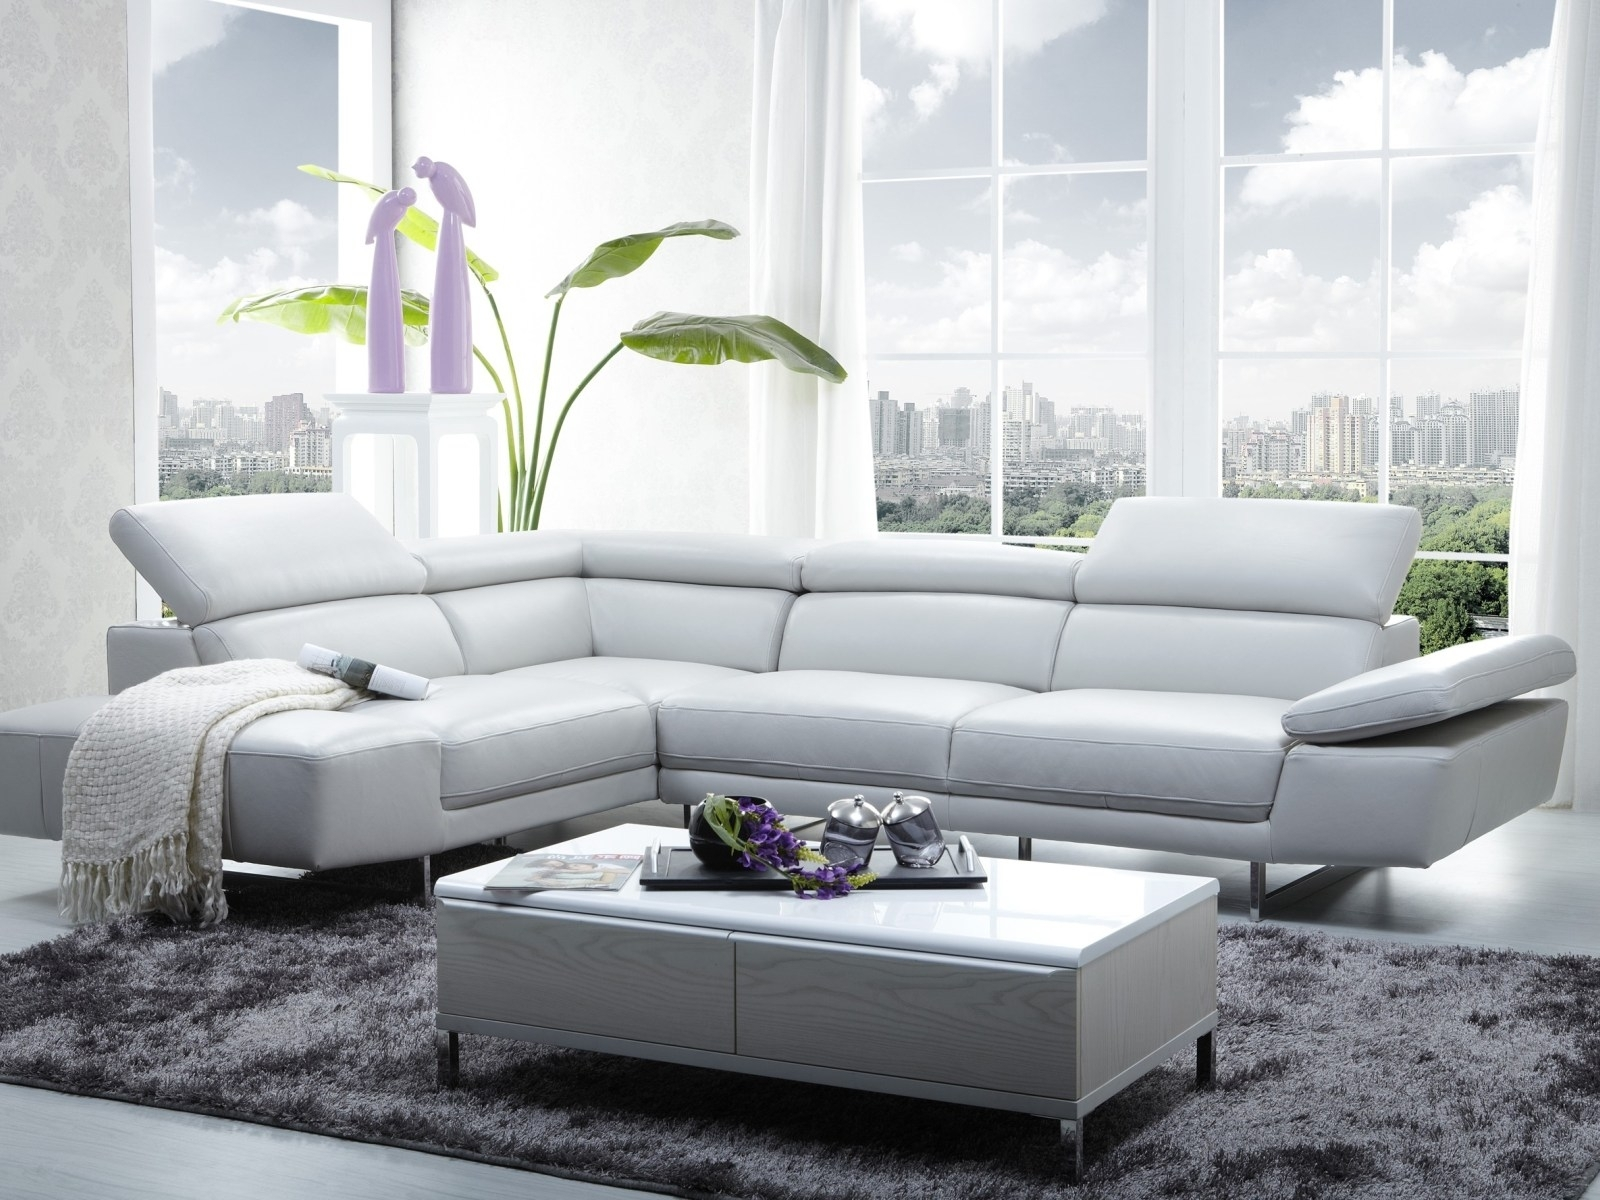 ▻ Sofa : 15 3058702 Poster P 1 A Modular Sofa That Can Rearrange Intended For Sectional Sofas That Can Be Rearranged (View 10 of 10)